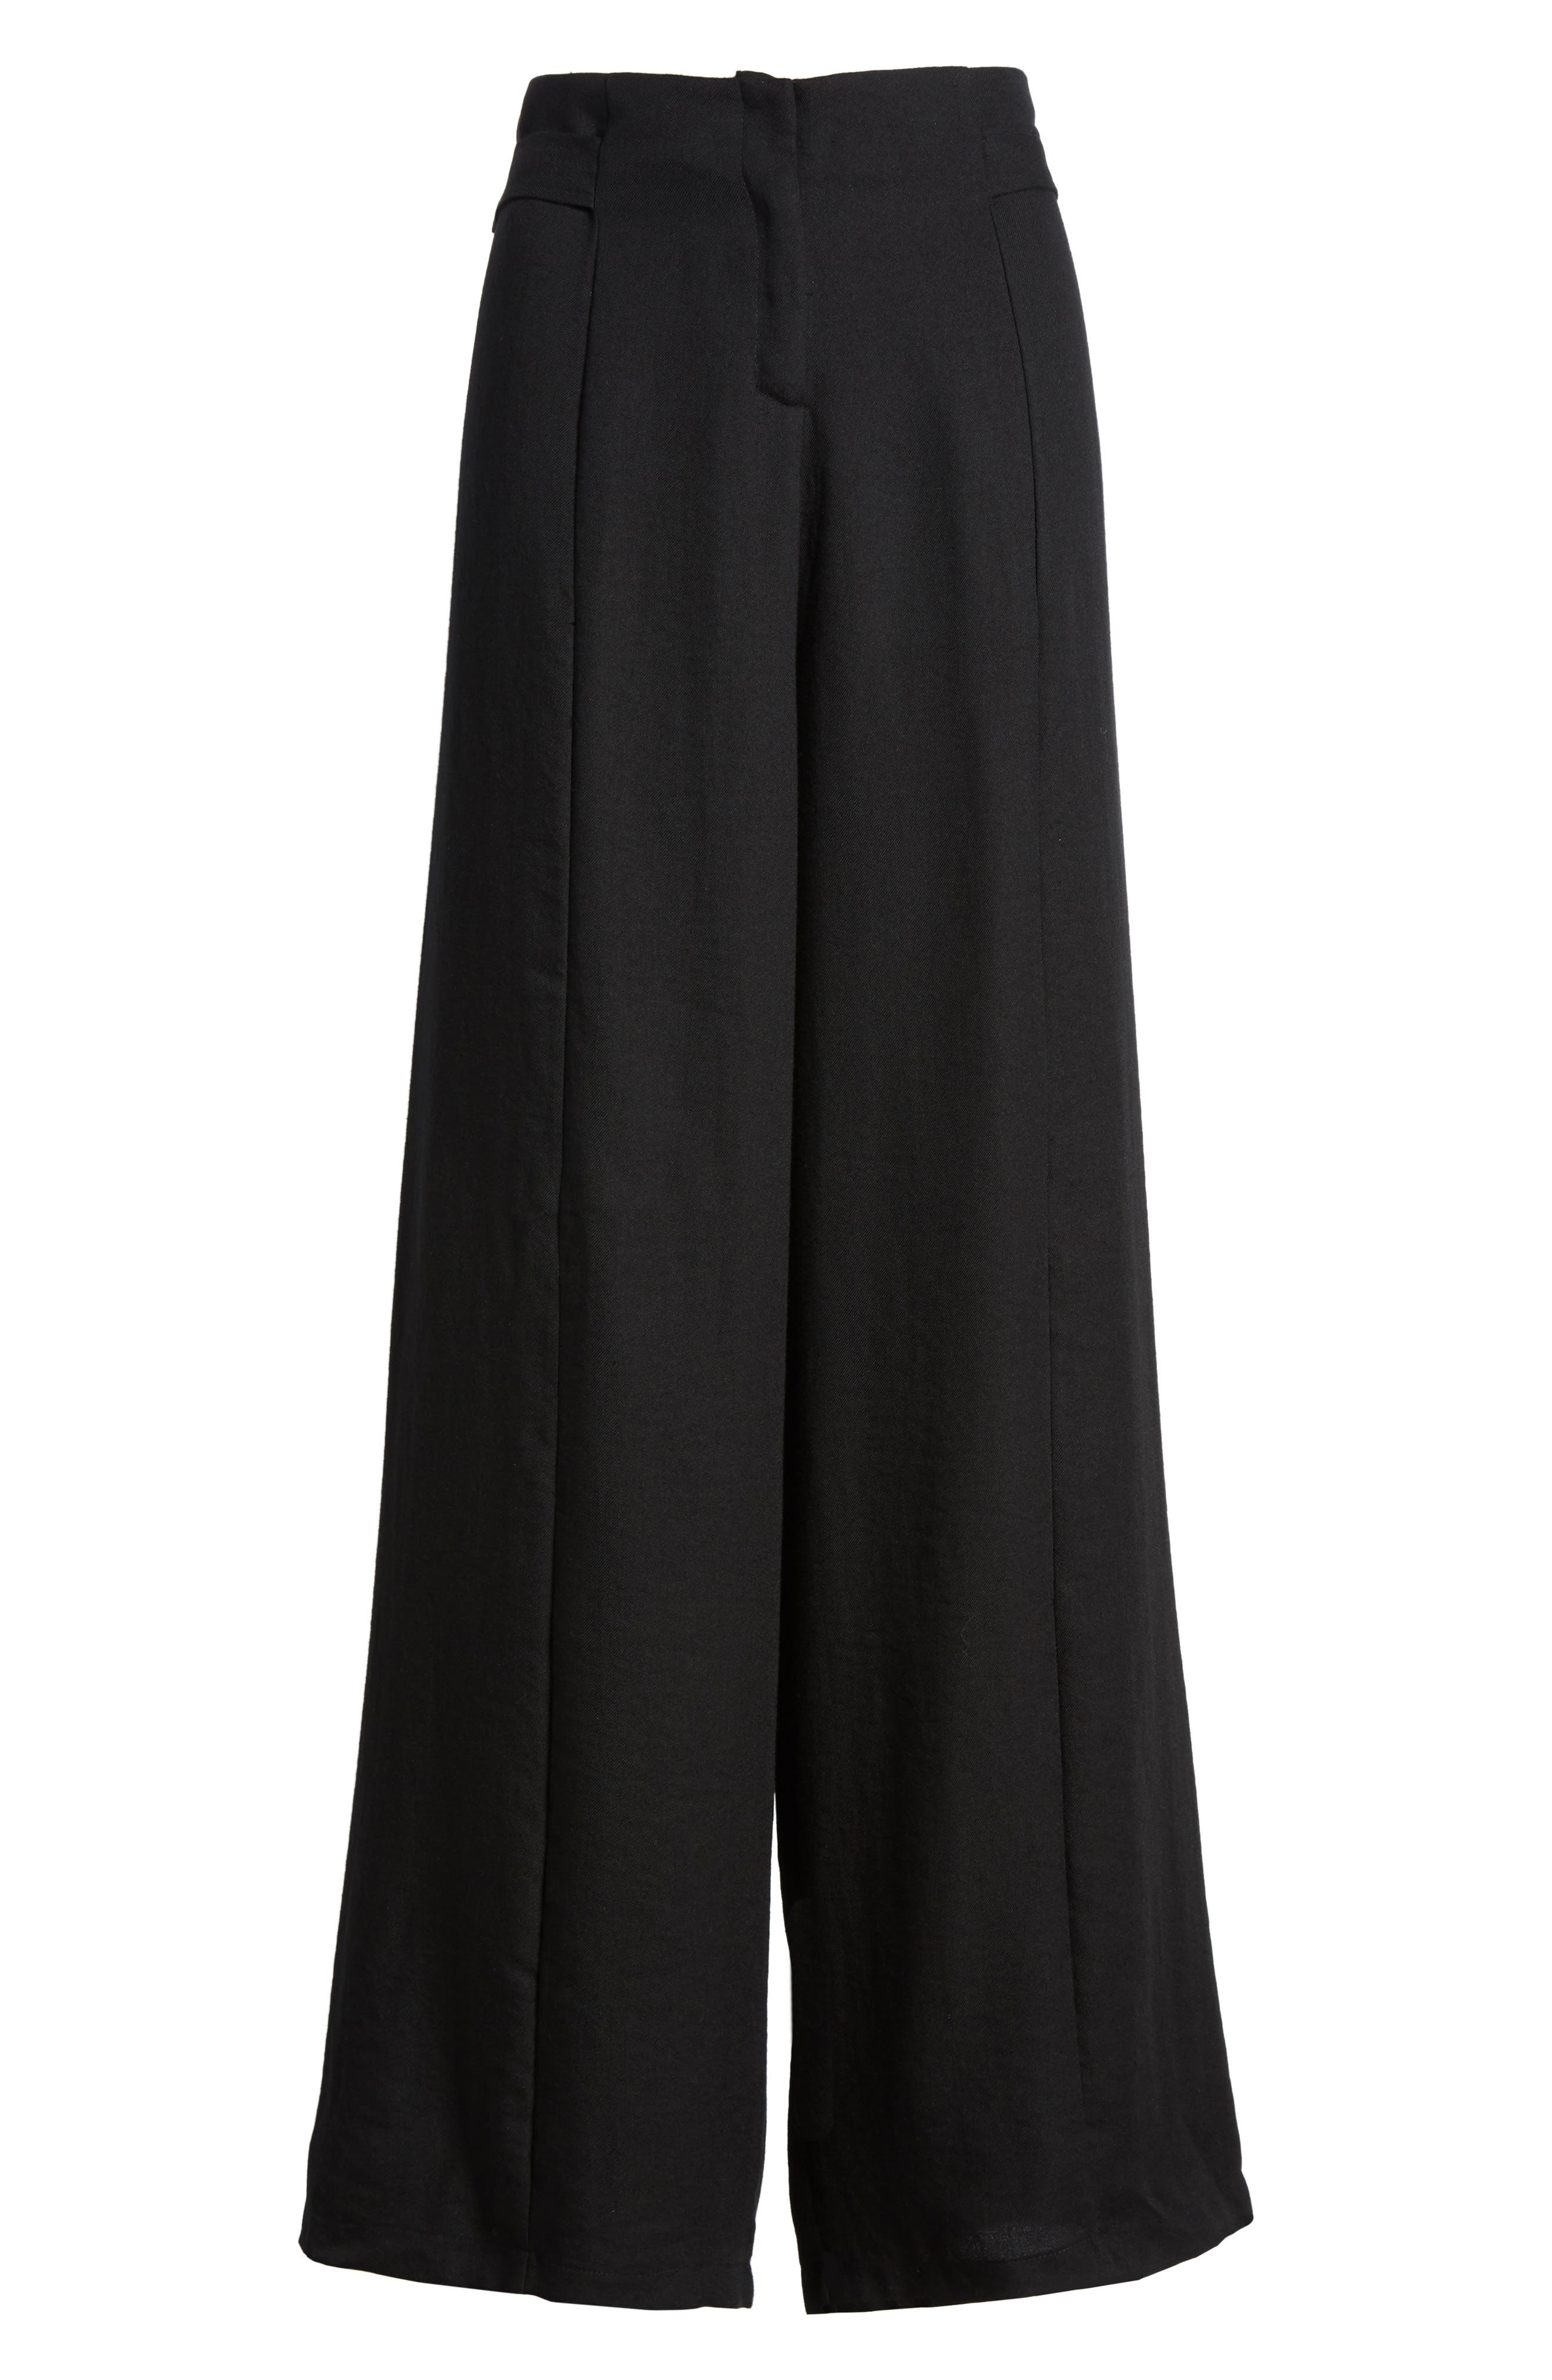 Bishop + Young O-Ring Wide Leg Pants,                             Alternate thumbnail 7, color,                             001